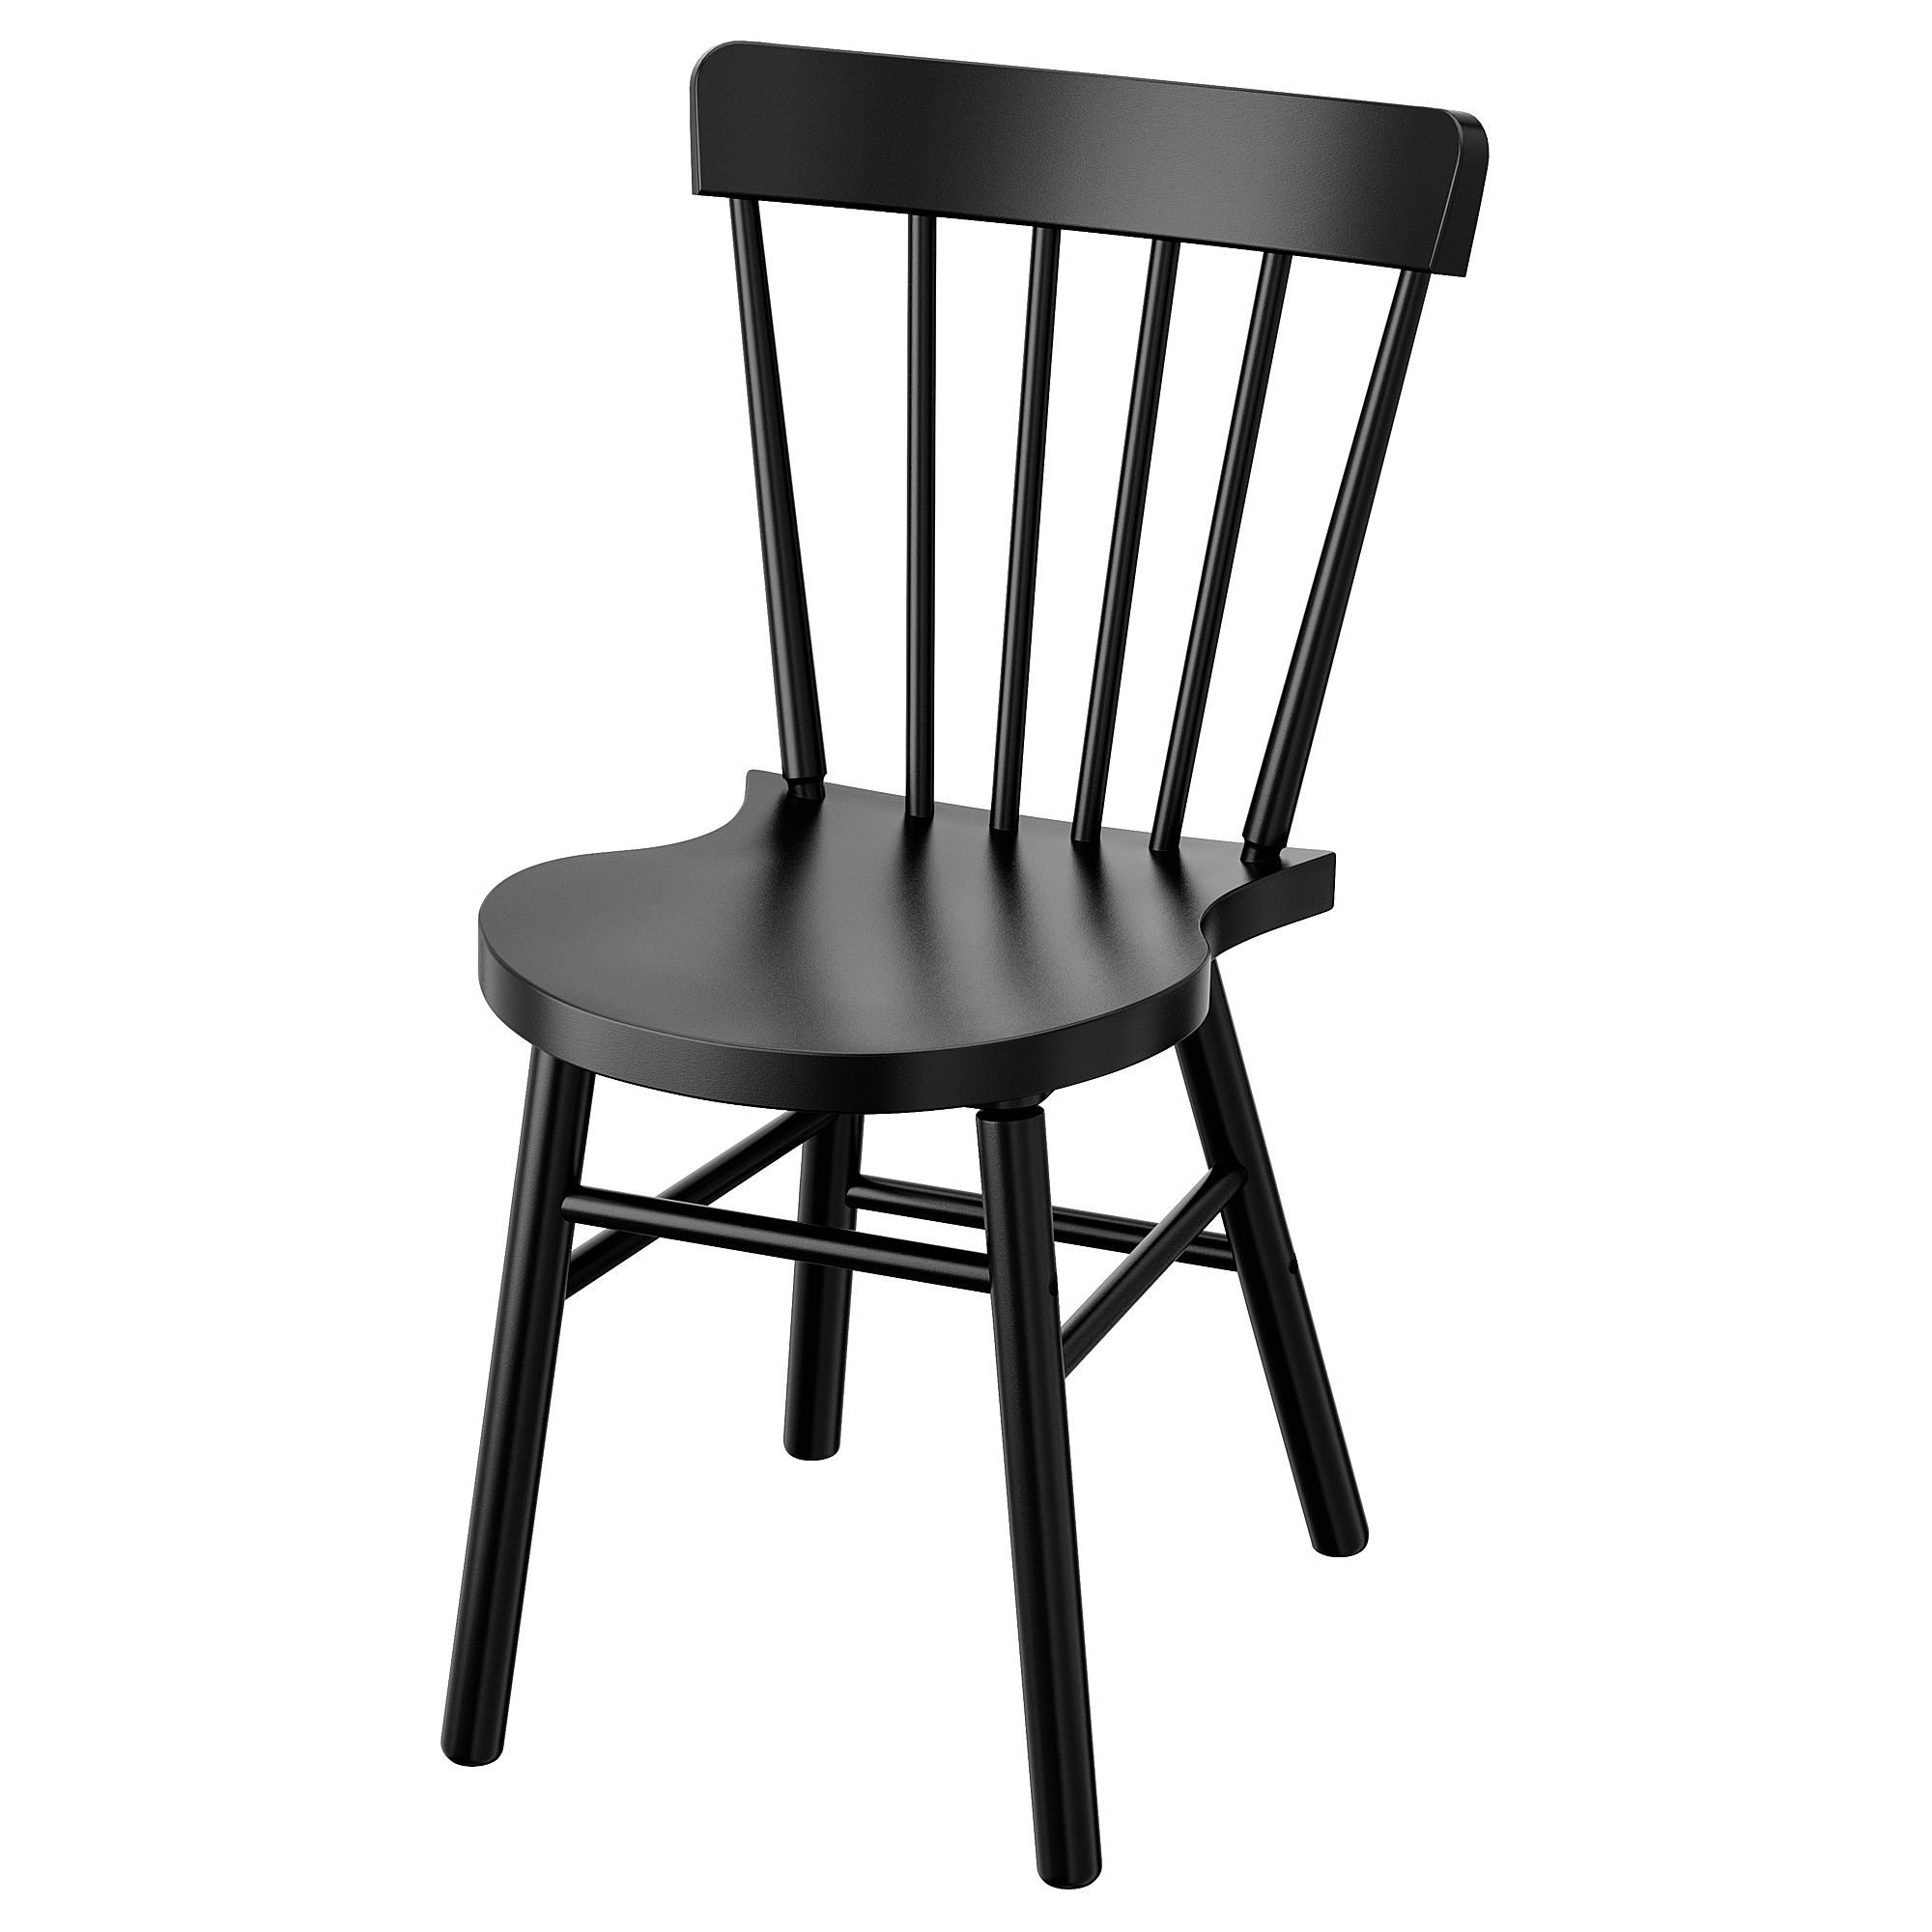 NORRARYD Chair black Ikea, Dining chairs, Chair